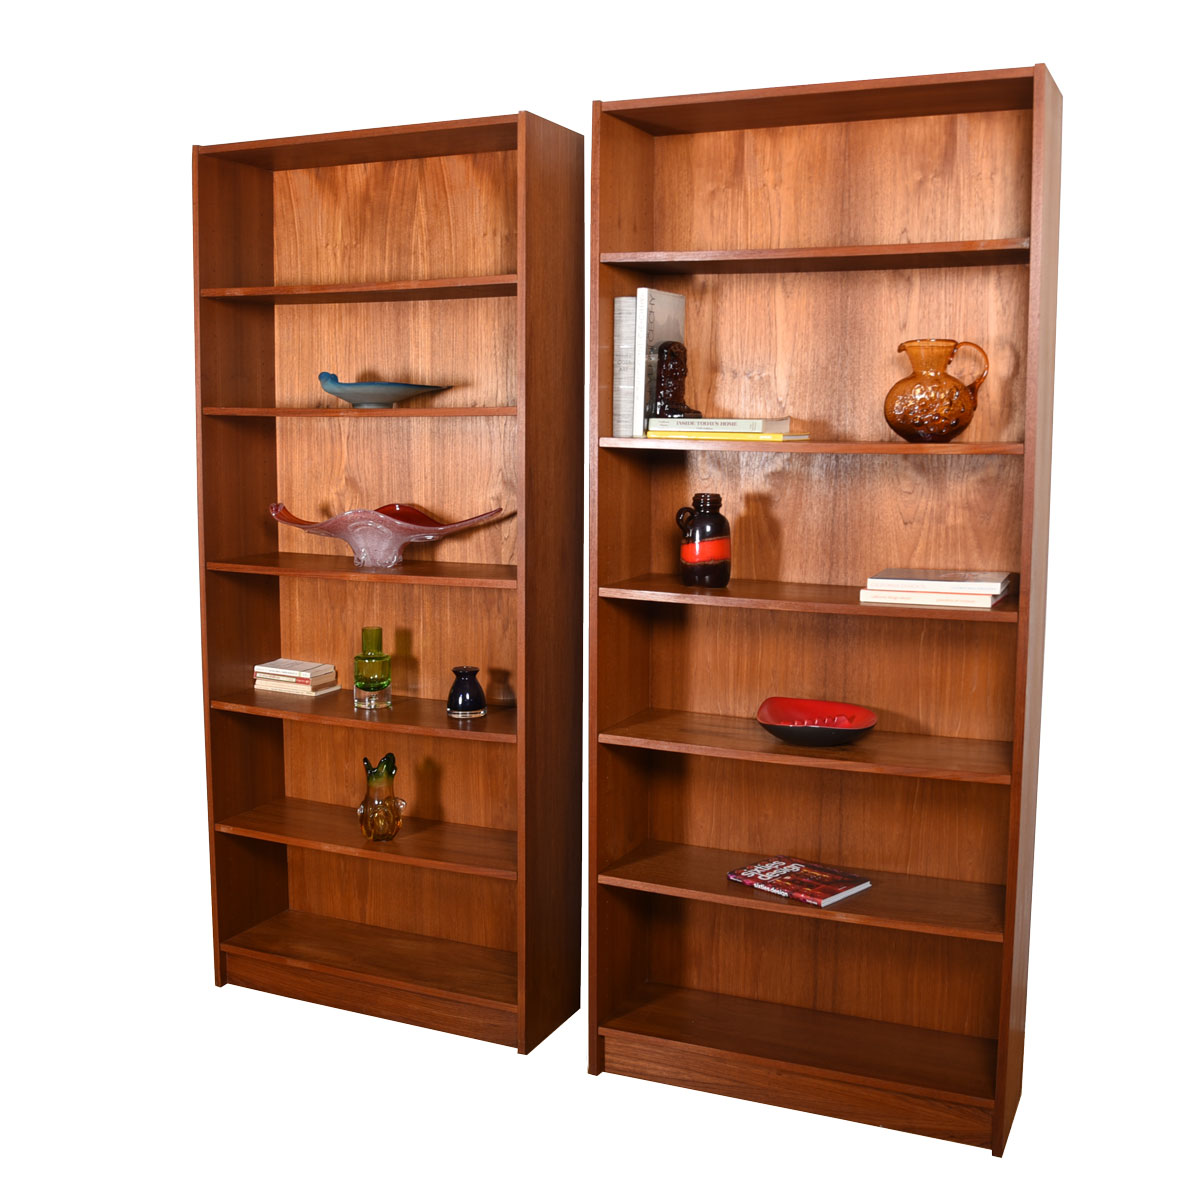 Pair 84″ Tall Danish Teak Bookcases with Adjustable Shelves